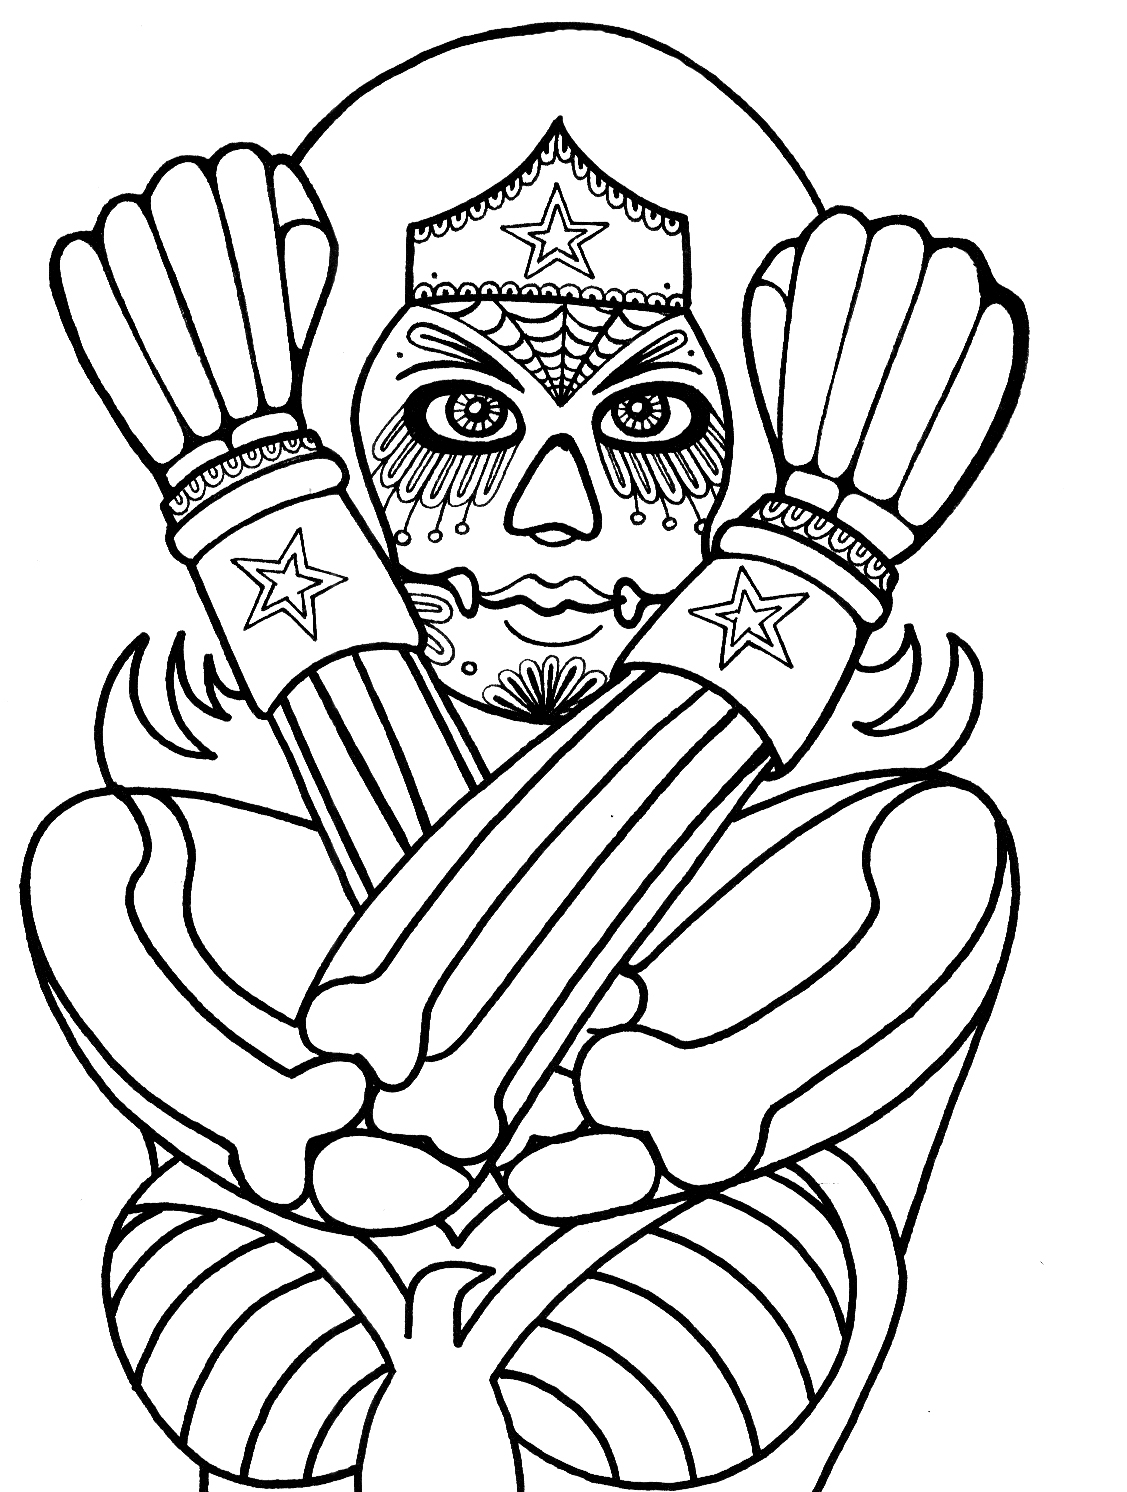 1127x1492 Yucca Flats, N.M. Wenchkin#39s coloring pages